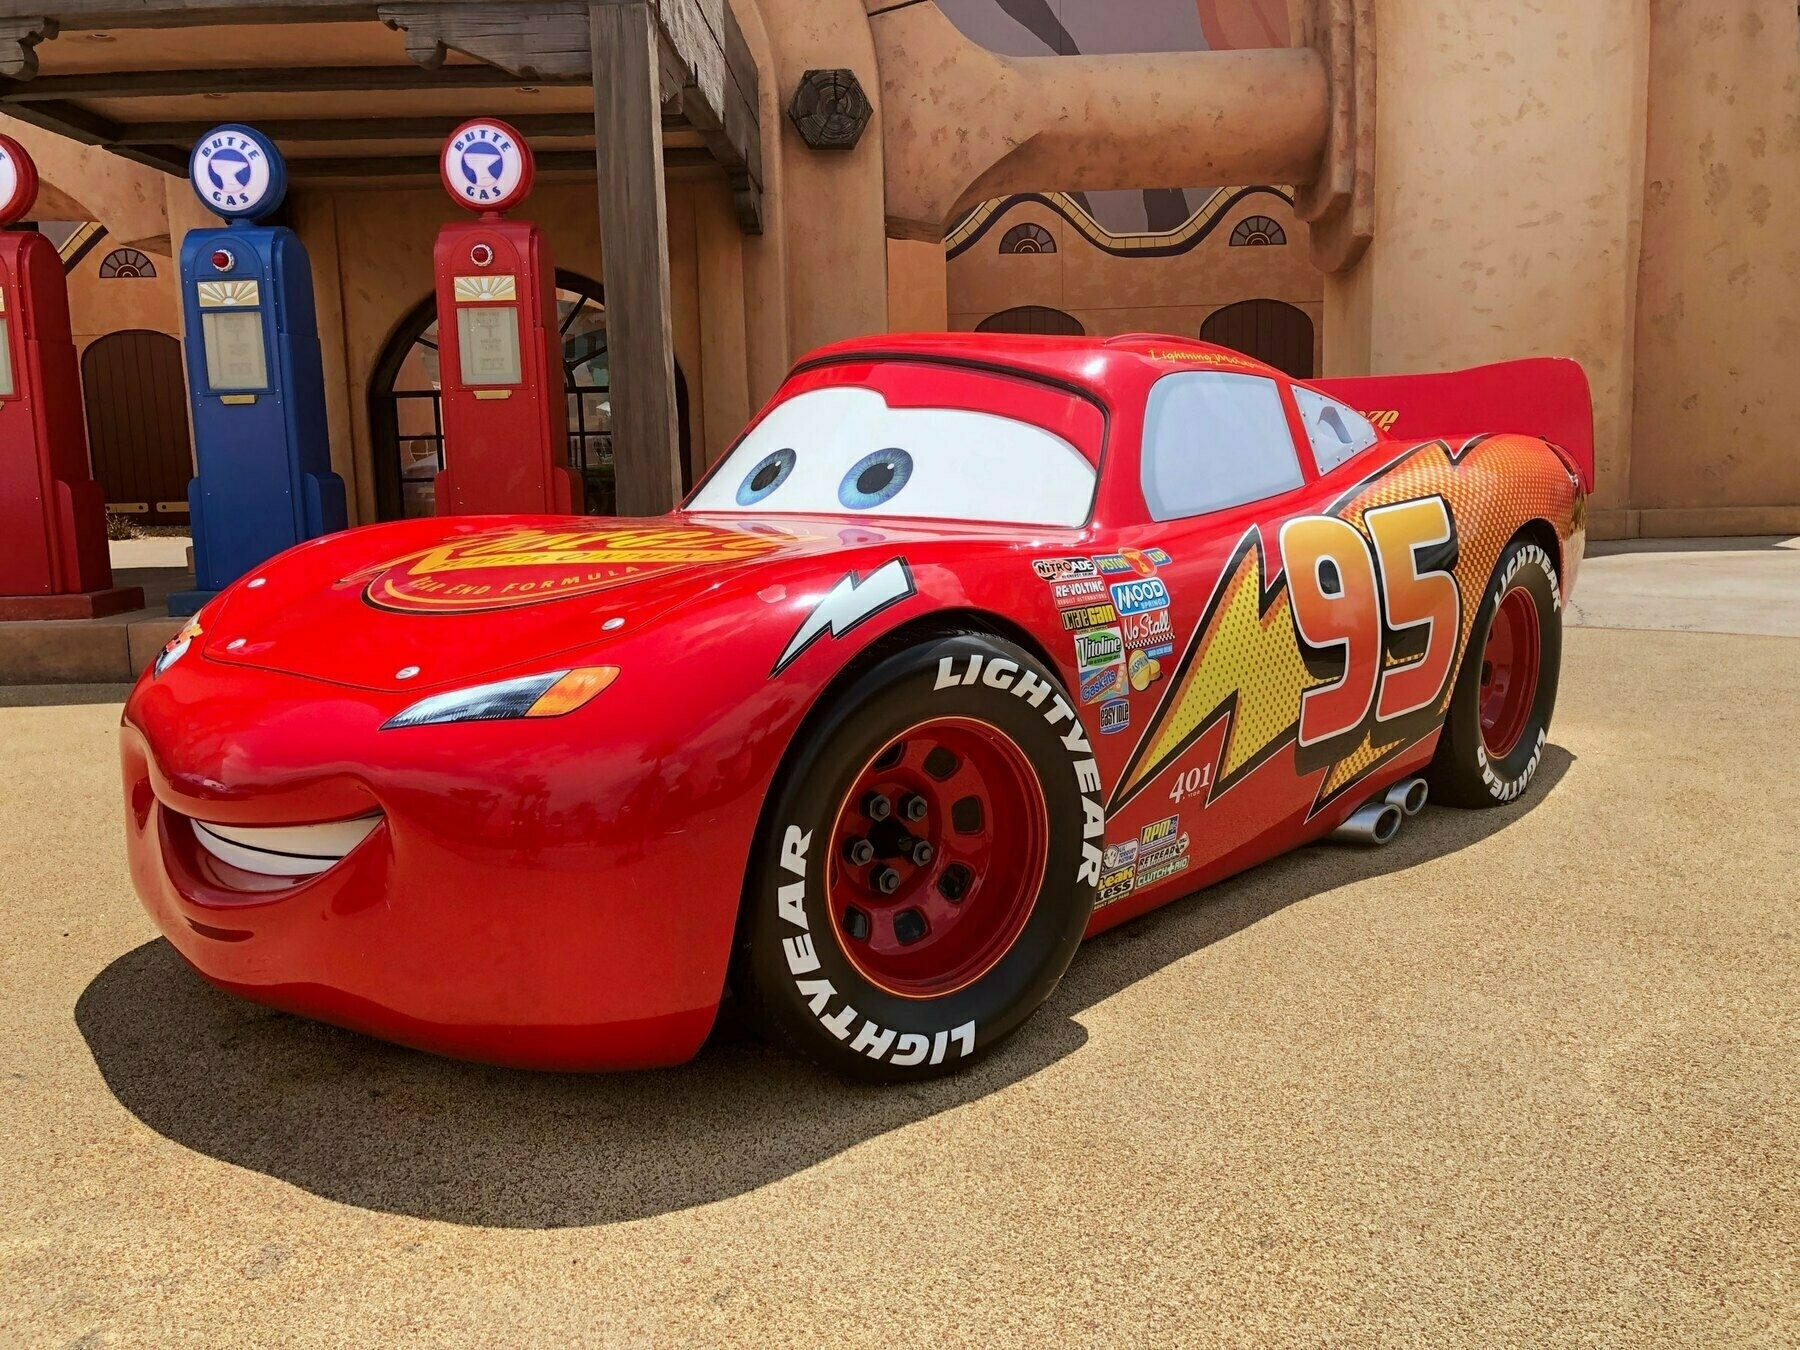 Lightning McQueen model car